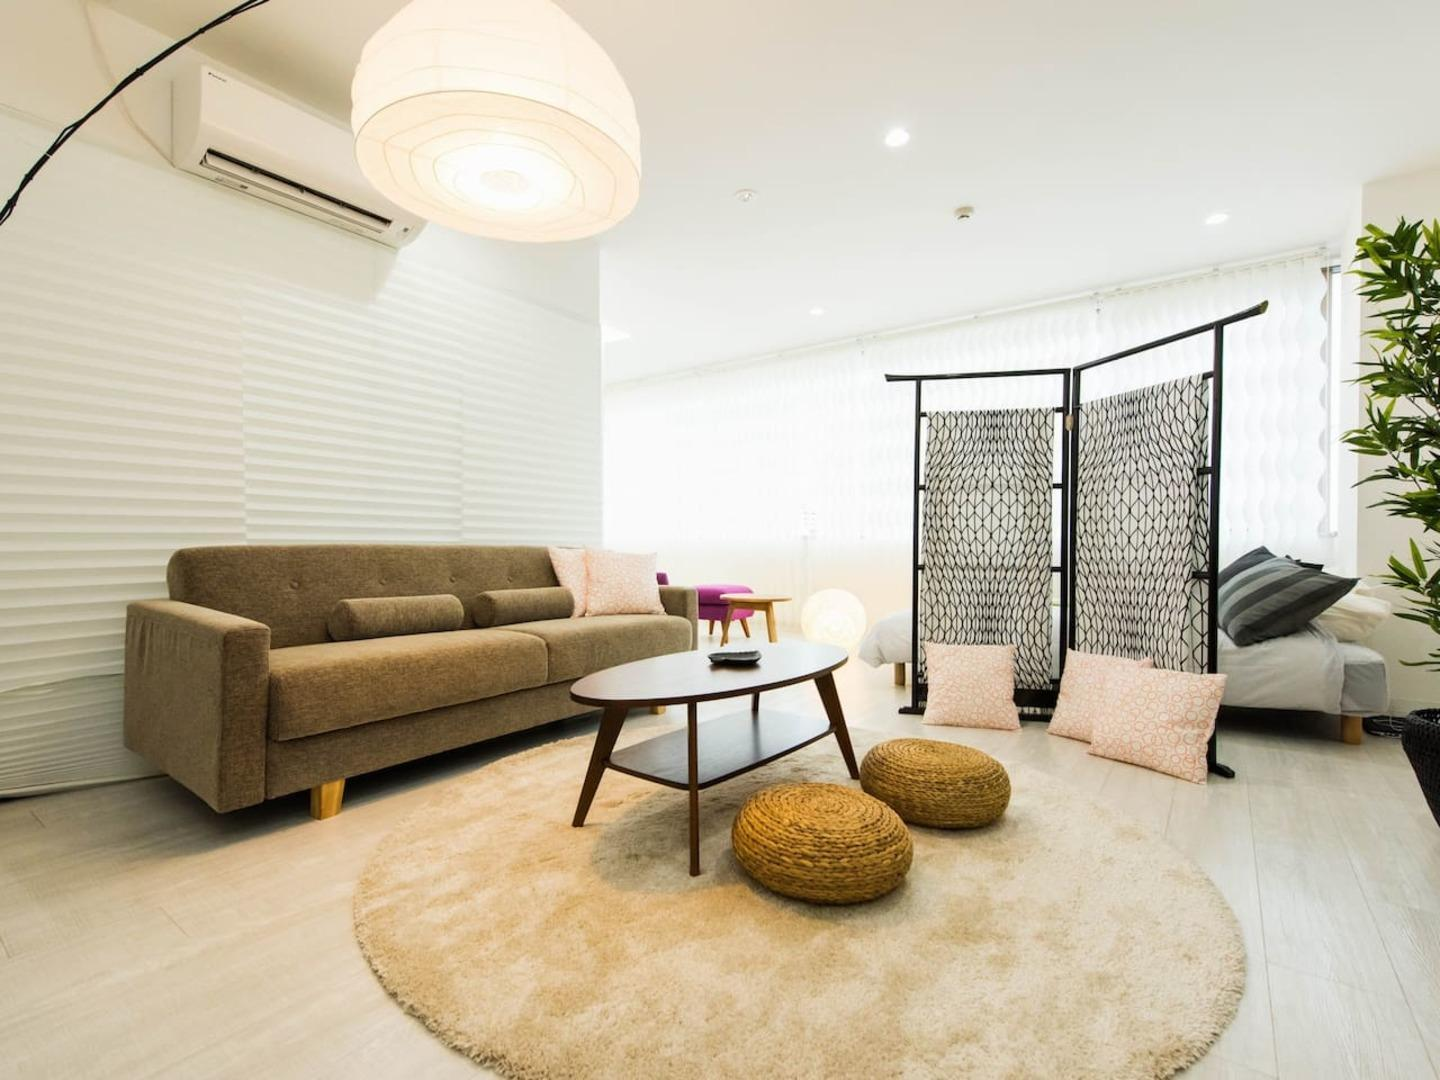 DGSHJ Apartment In The Middle Of Shijo Kyoto Gion